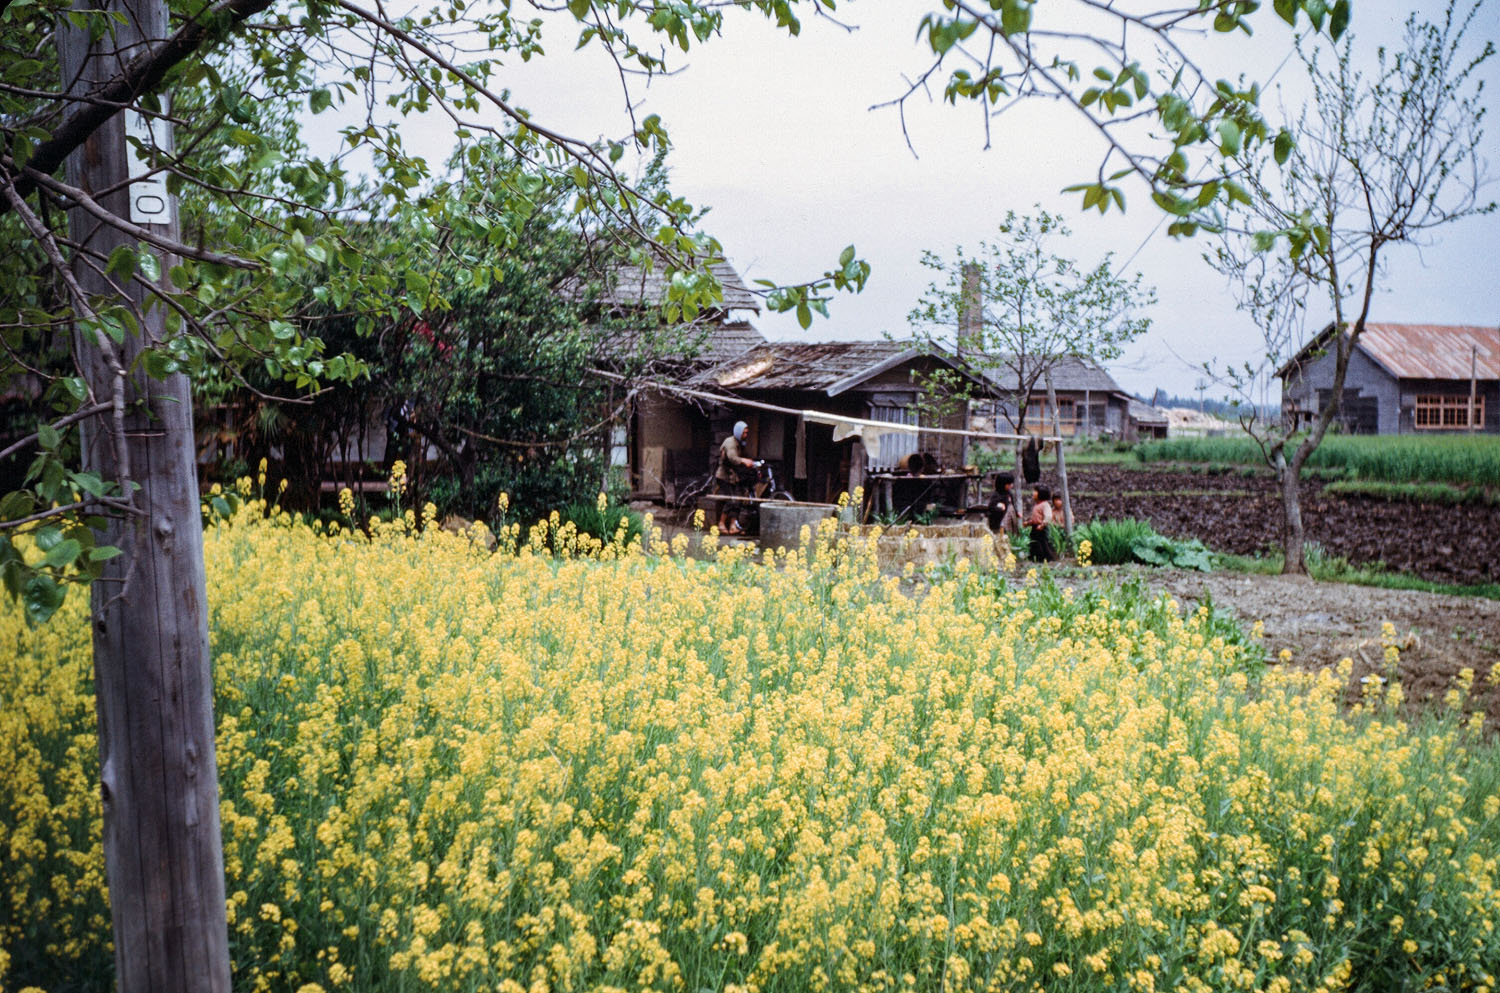 451- Flowers in front of Farmhouse